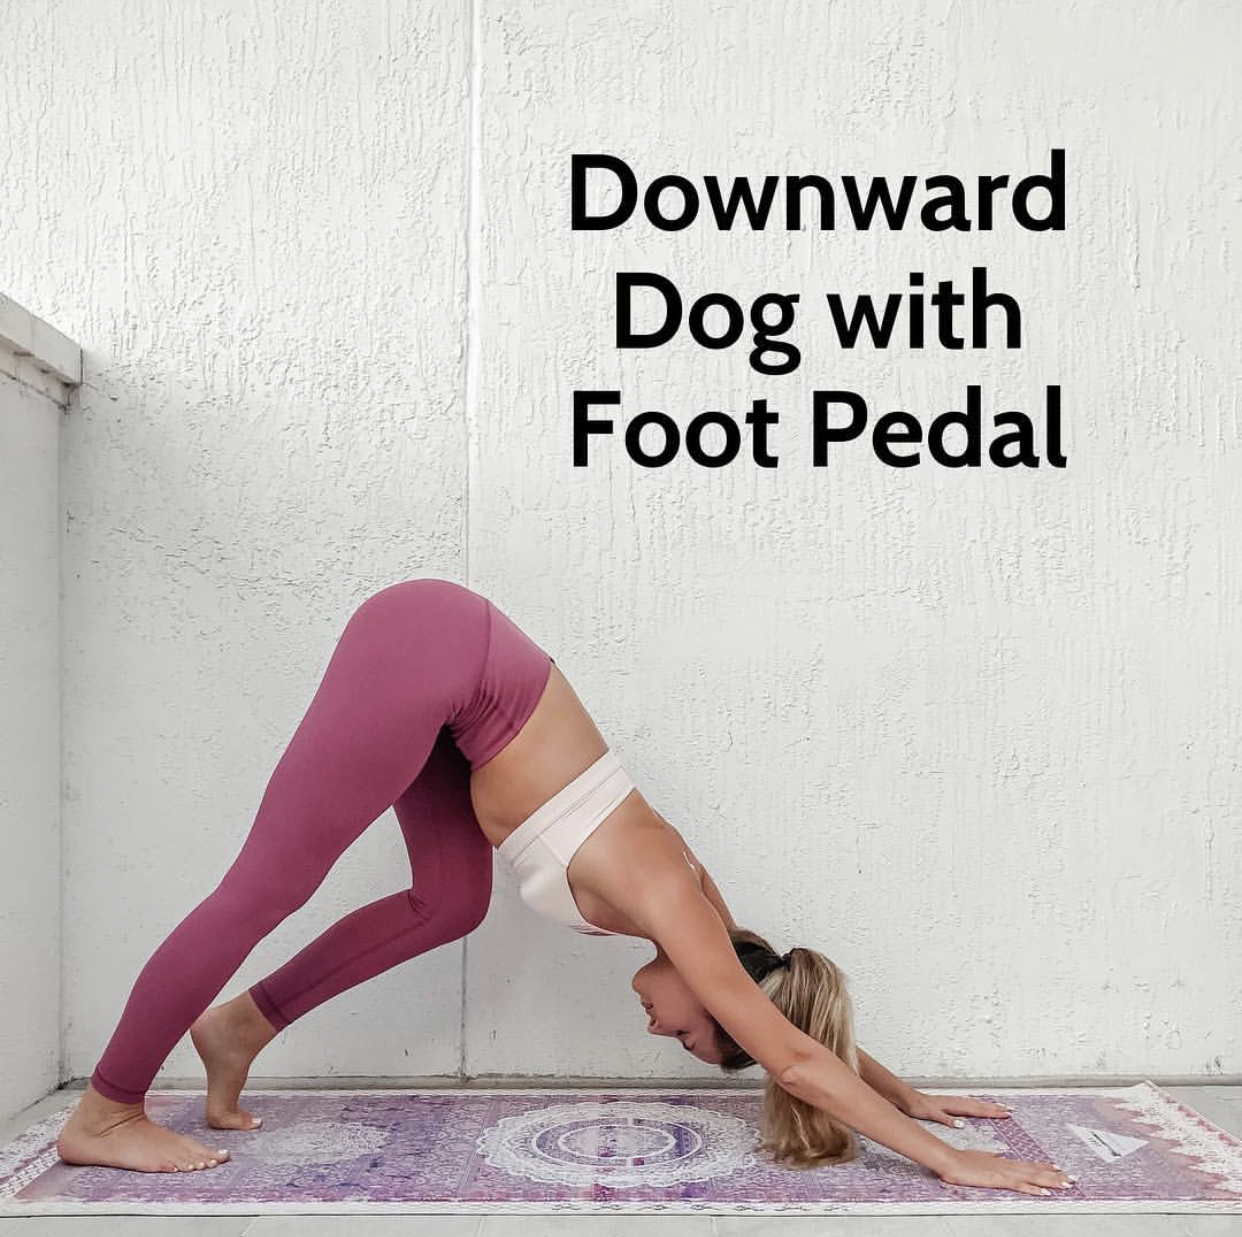 Downward Dog With Foot Pedal x switch your lifted heel on each inhale/exhale. Switch for a total of 20 times.